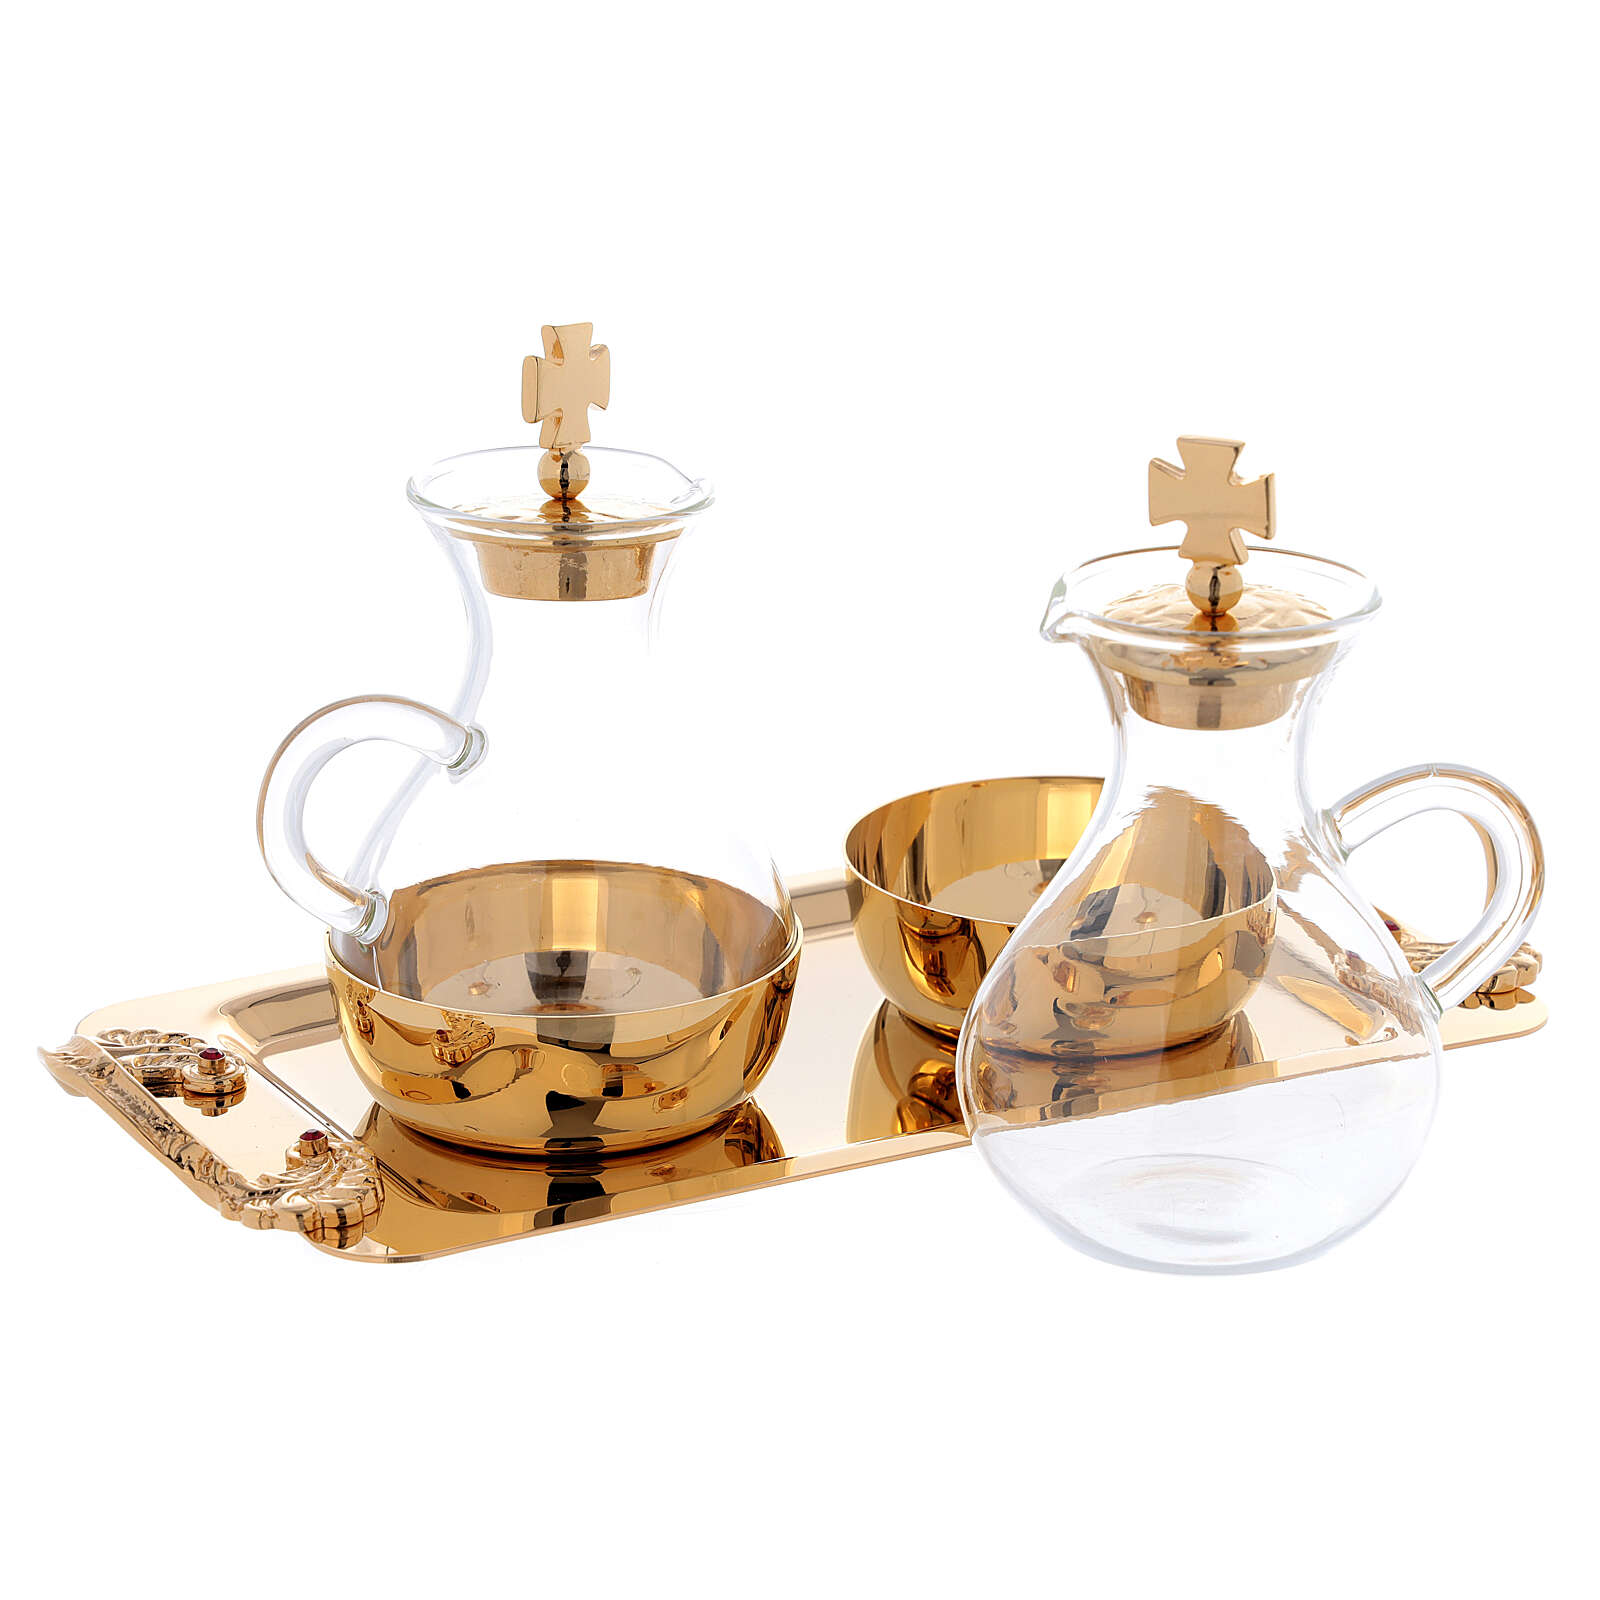 Cruets in glass Roma model, with golden brass plate 4